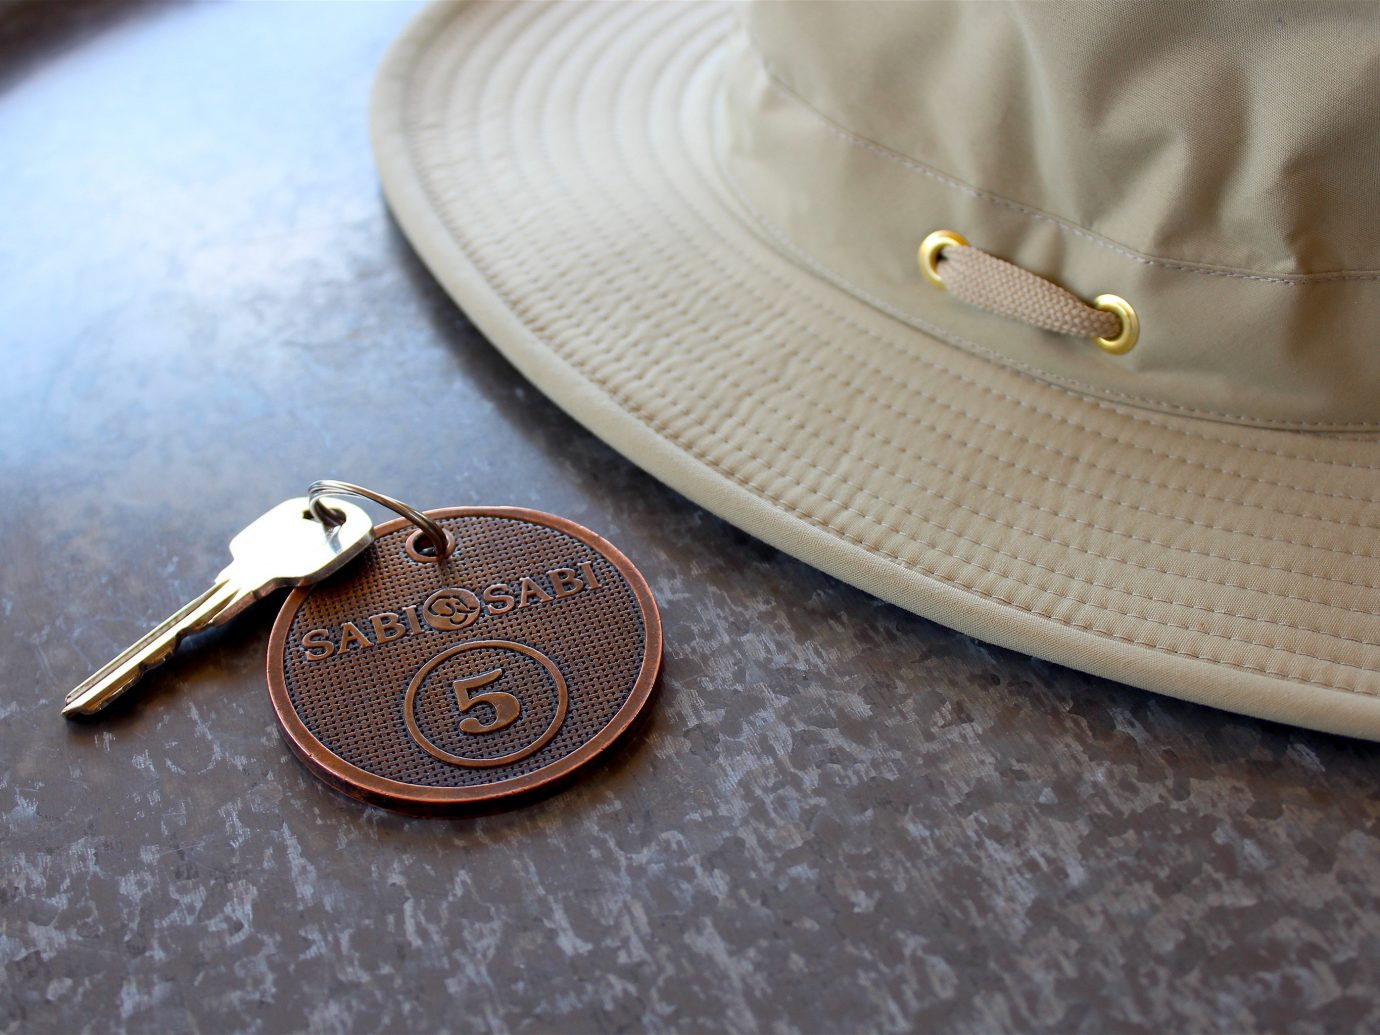 Outdoors + Adventure Safaris Trip Ideas clothing fashion accessory jewellery leather shoes accessory